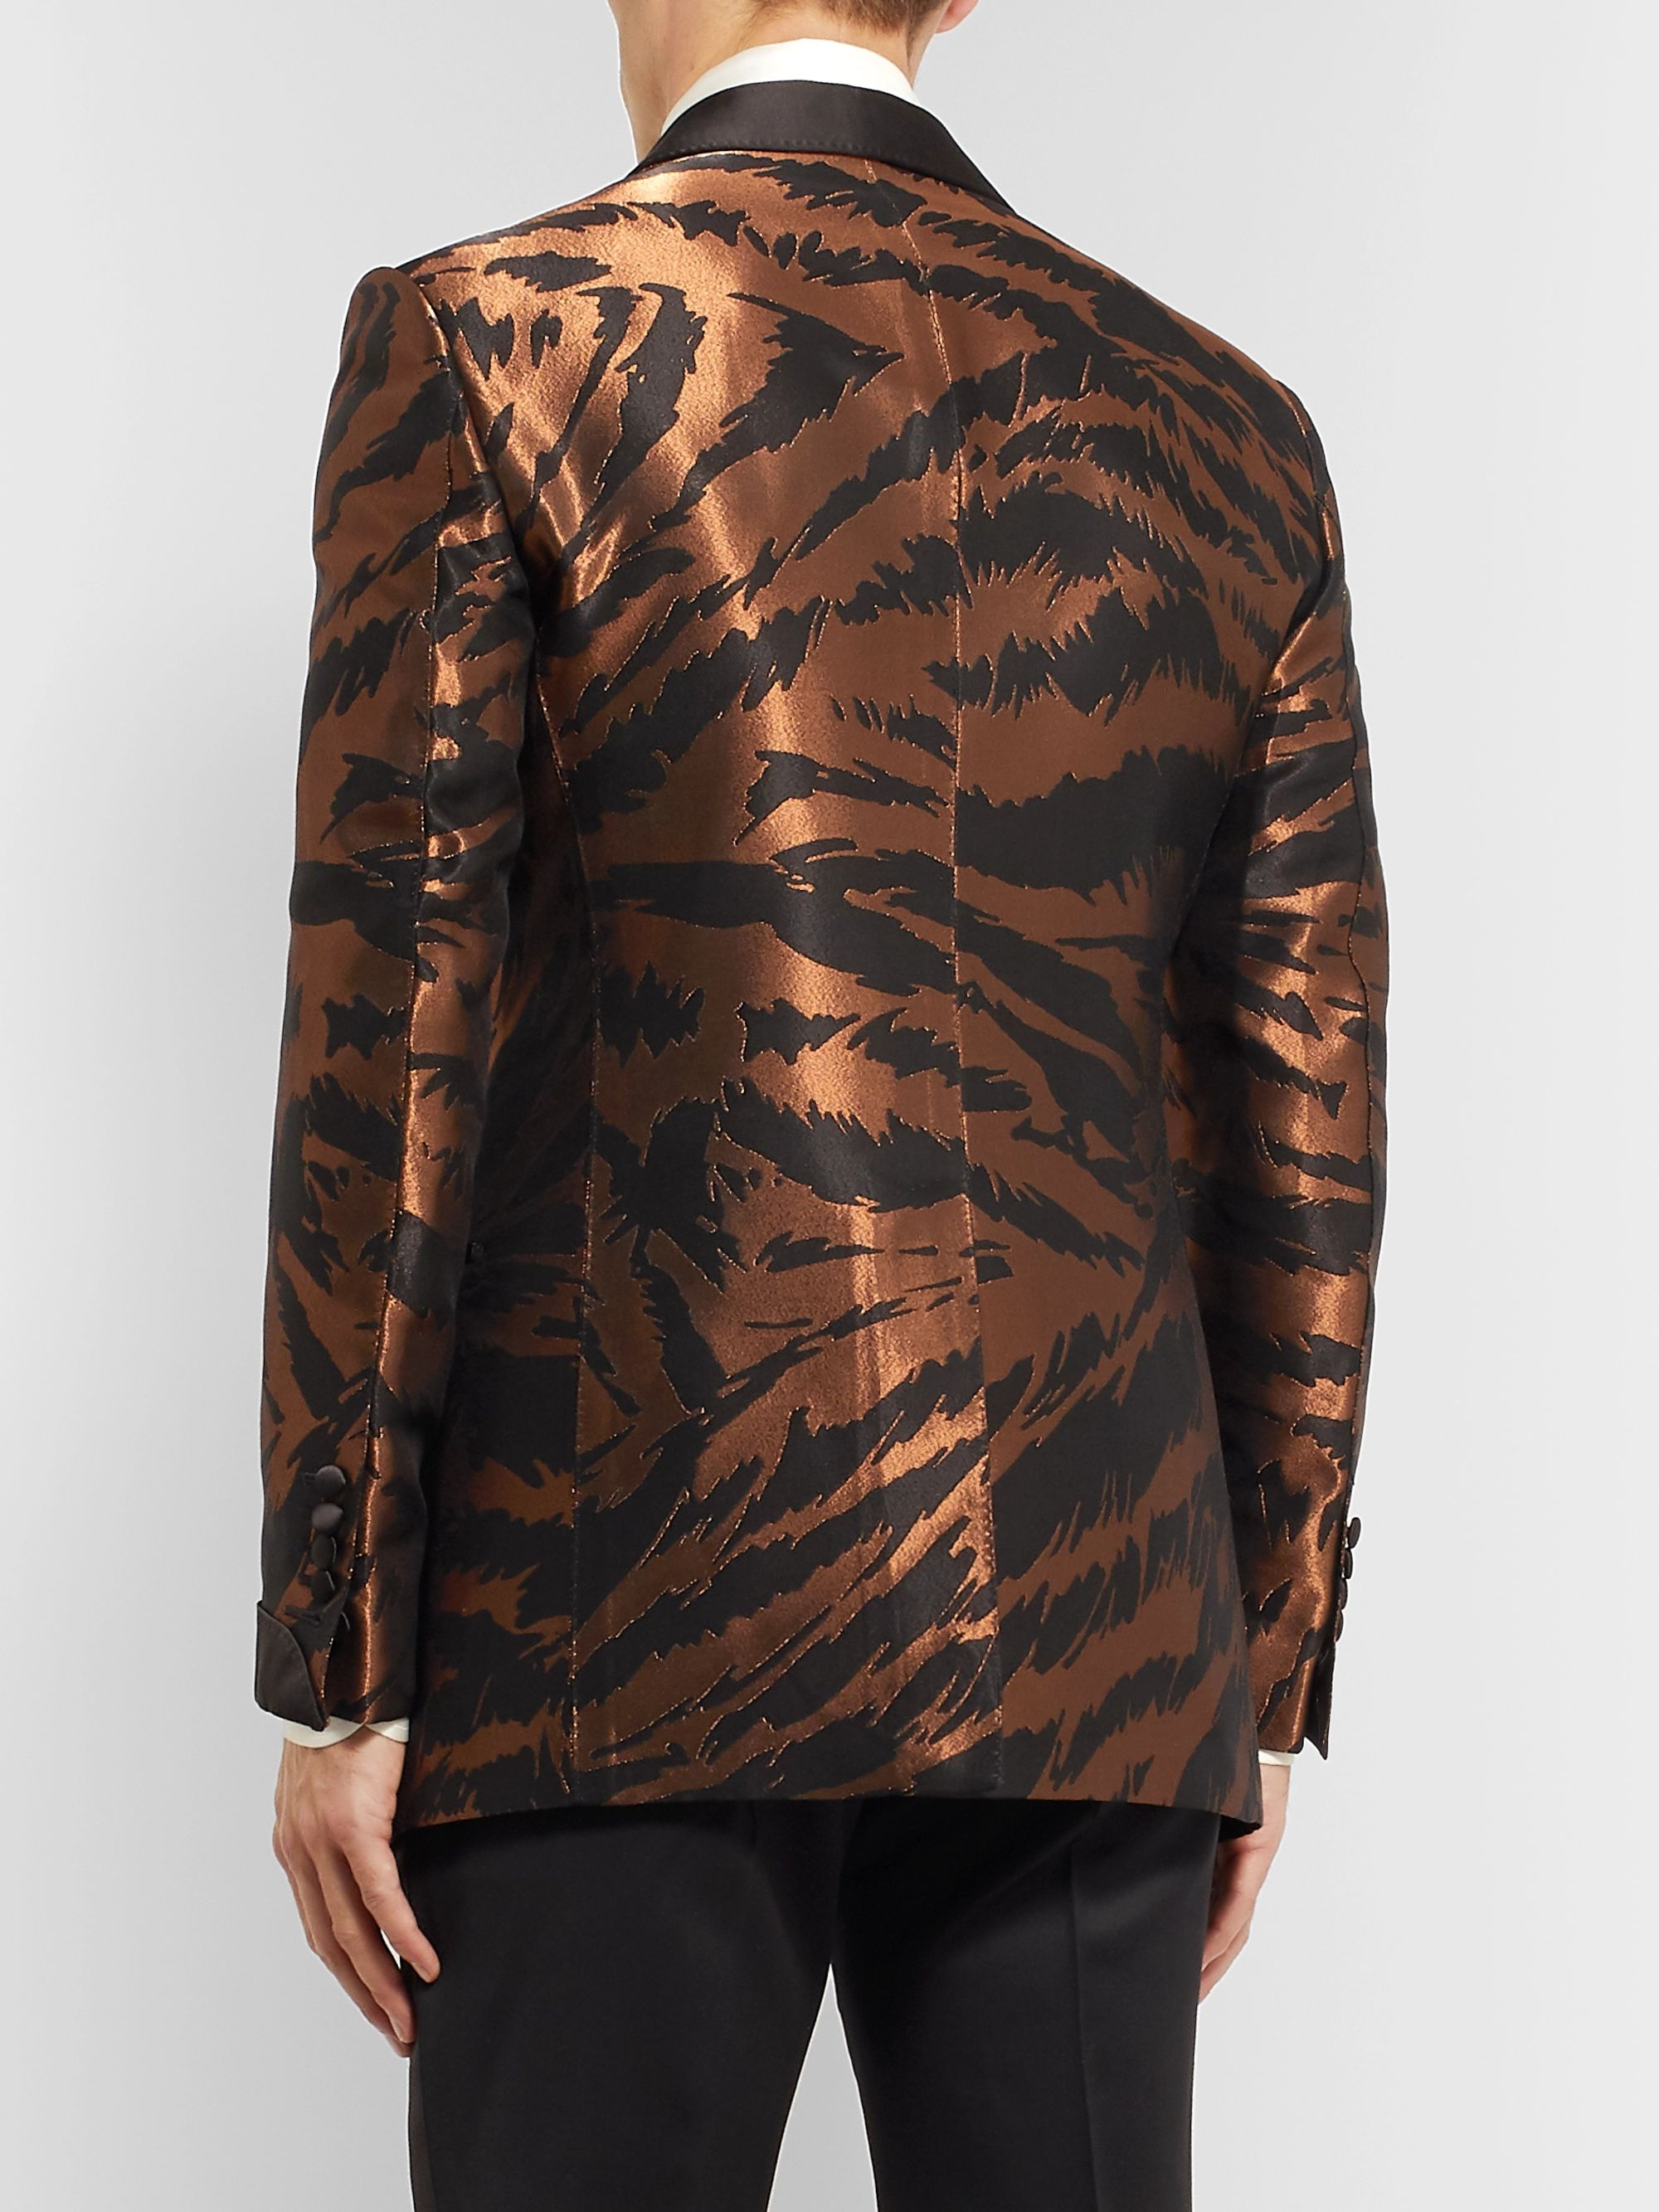 TOM FORD Copper Slim-Fit Satin-Trimmed Zebra-Jacquard Tuxedo Jacket